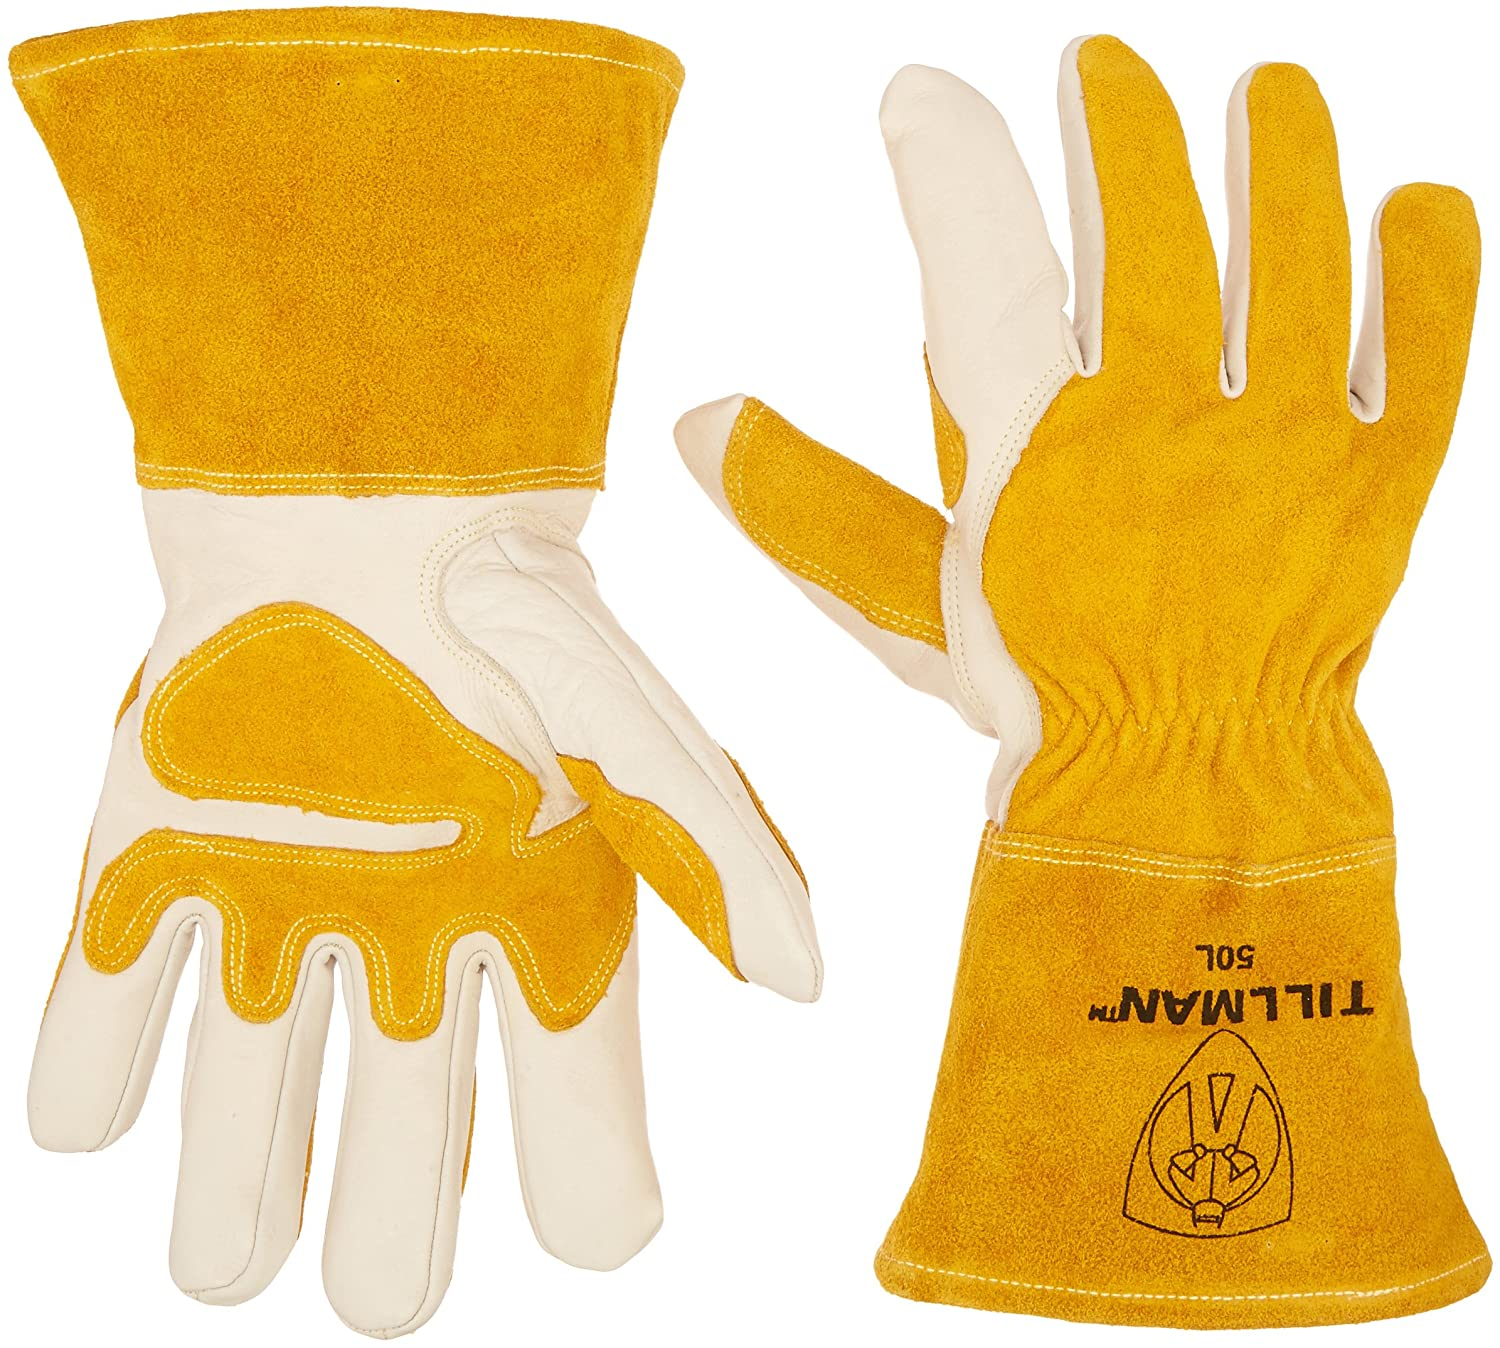 John Tillman and Co 50L Top Grain Leather MIG Gloves with Split Leather  Palm Reinforcements 5dd8ad216